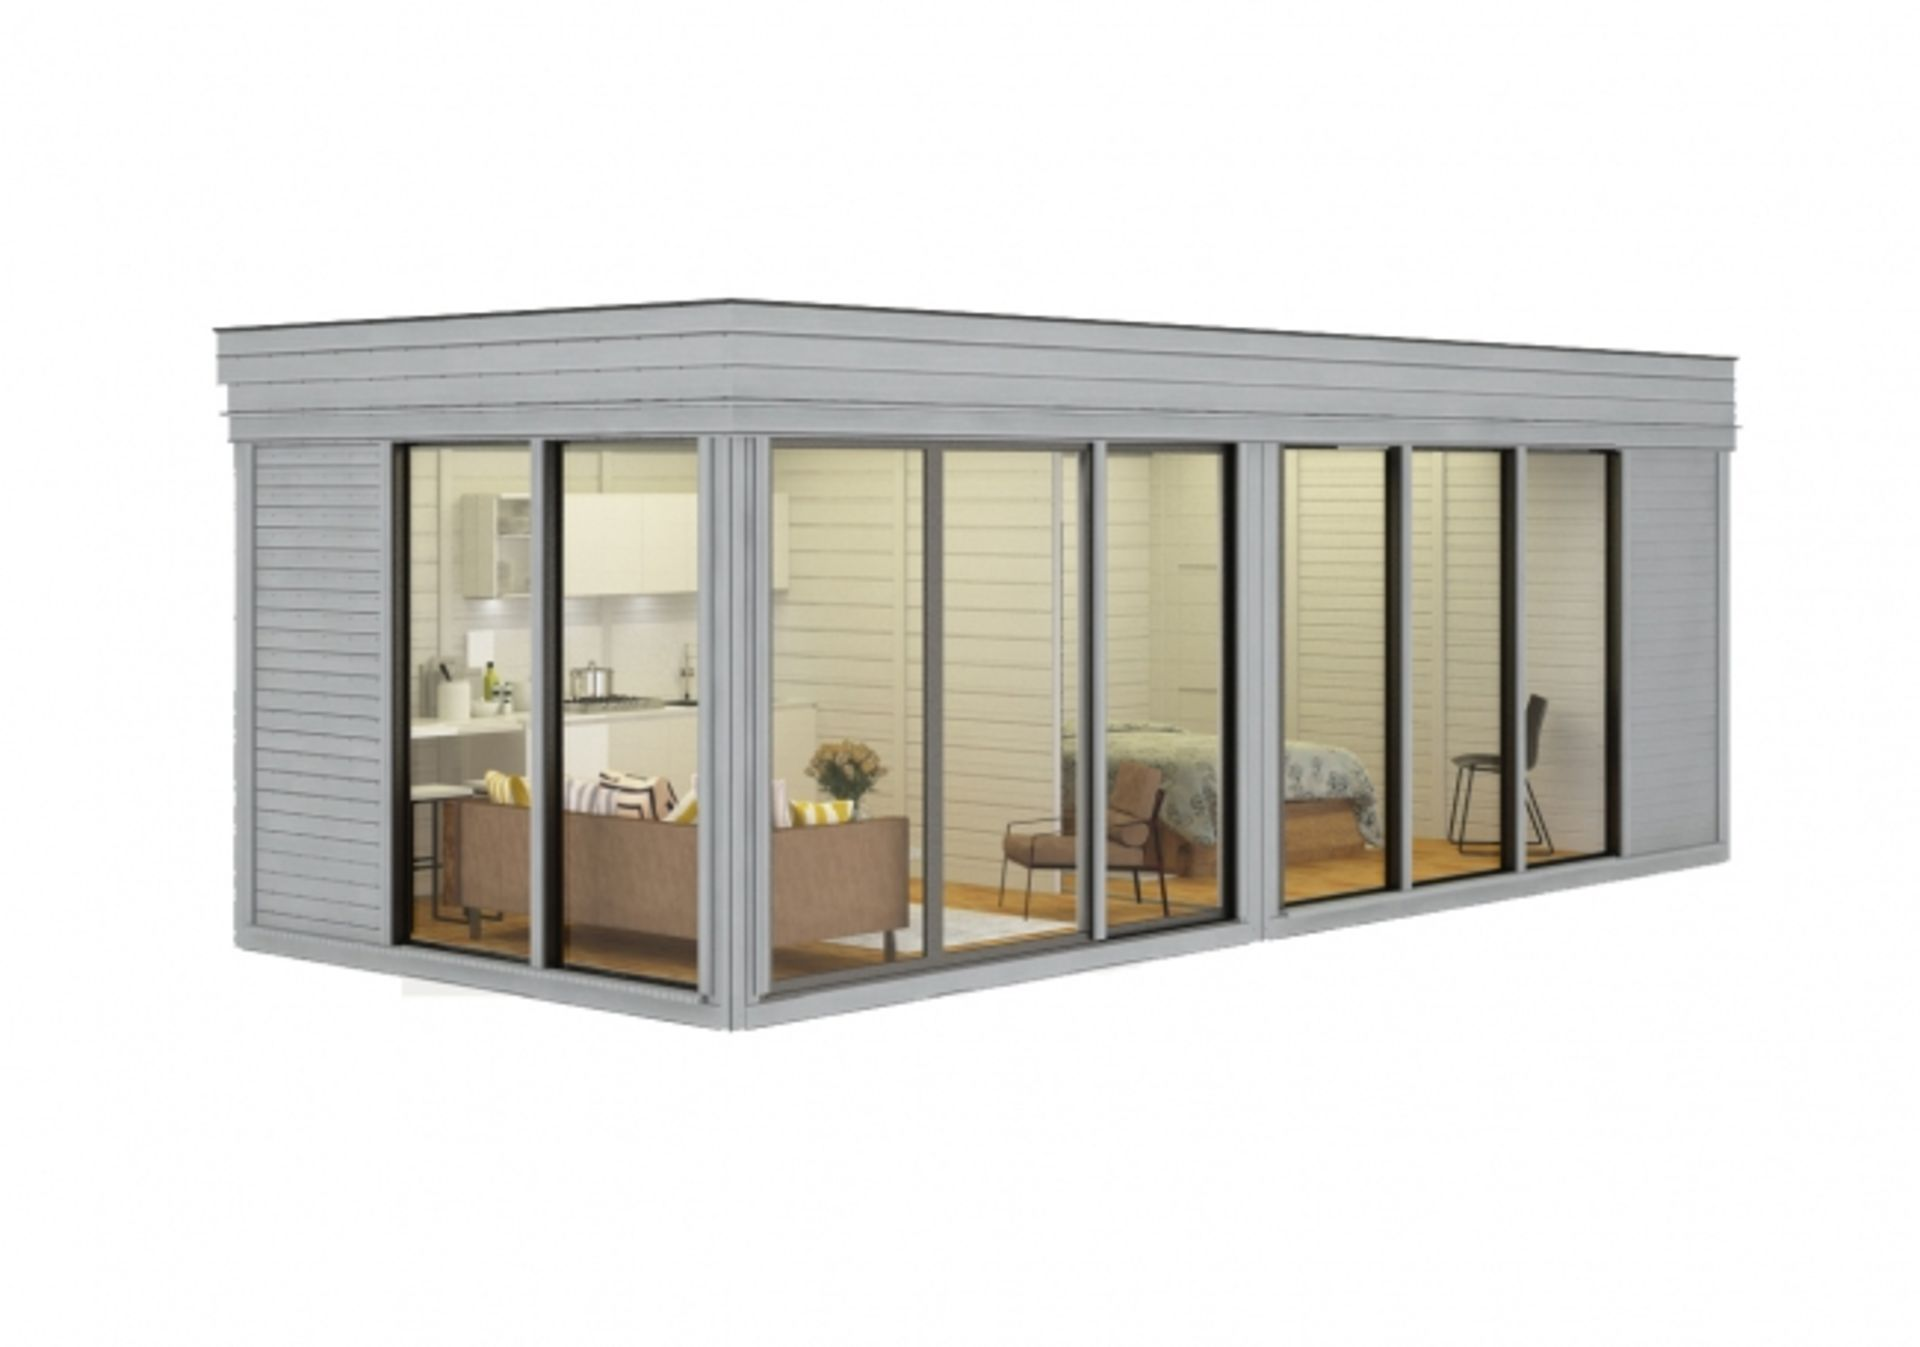 Lot 18045 - V Brand New Huge Luxury 3m x 7m Glamping Cube With Sliding Glass Doors - Kitchen Area - Bedroom -